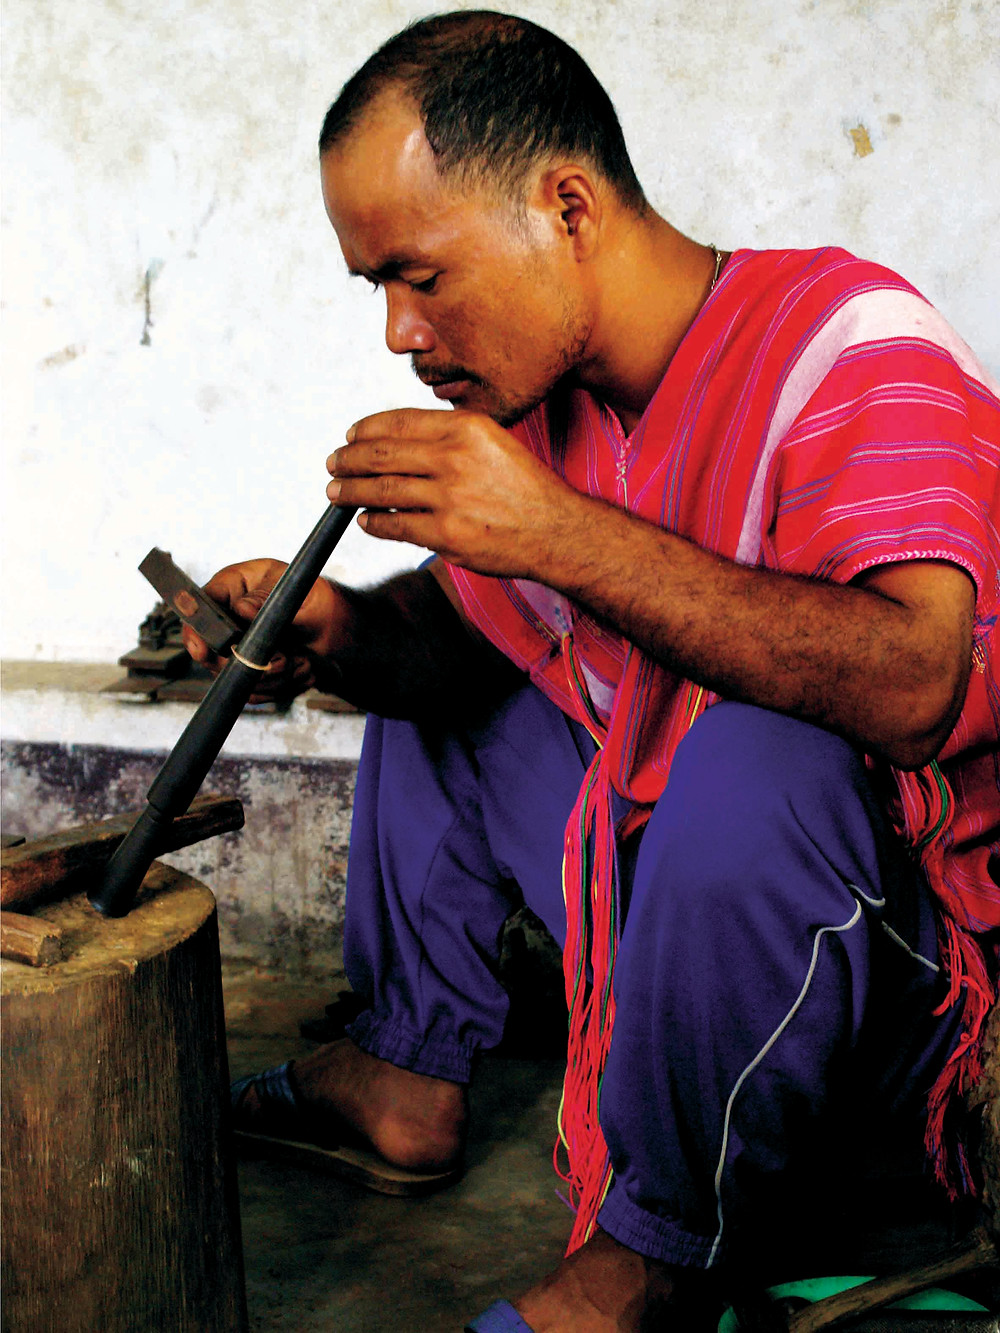 Karen producer crafting a silver ring.